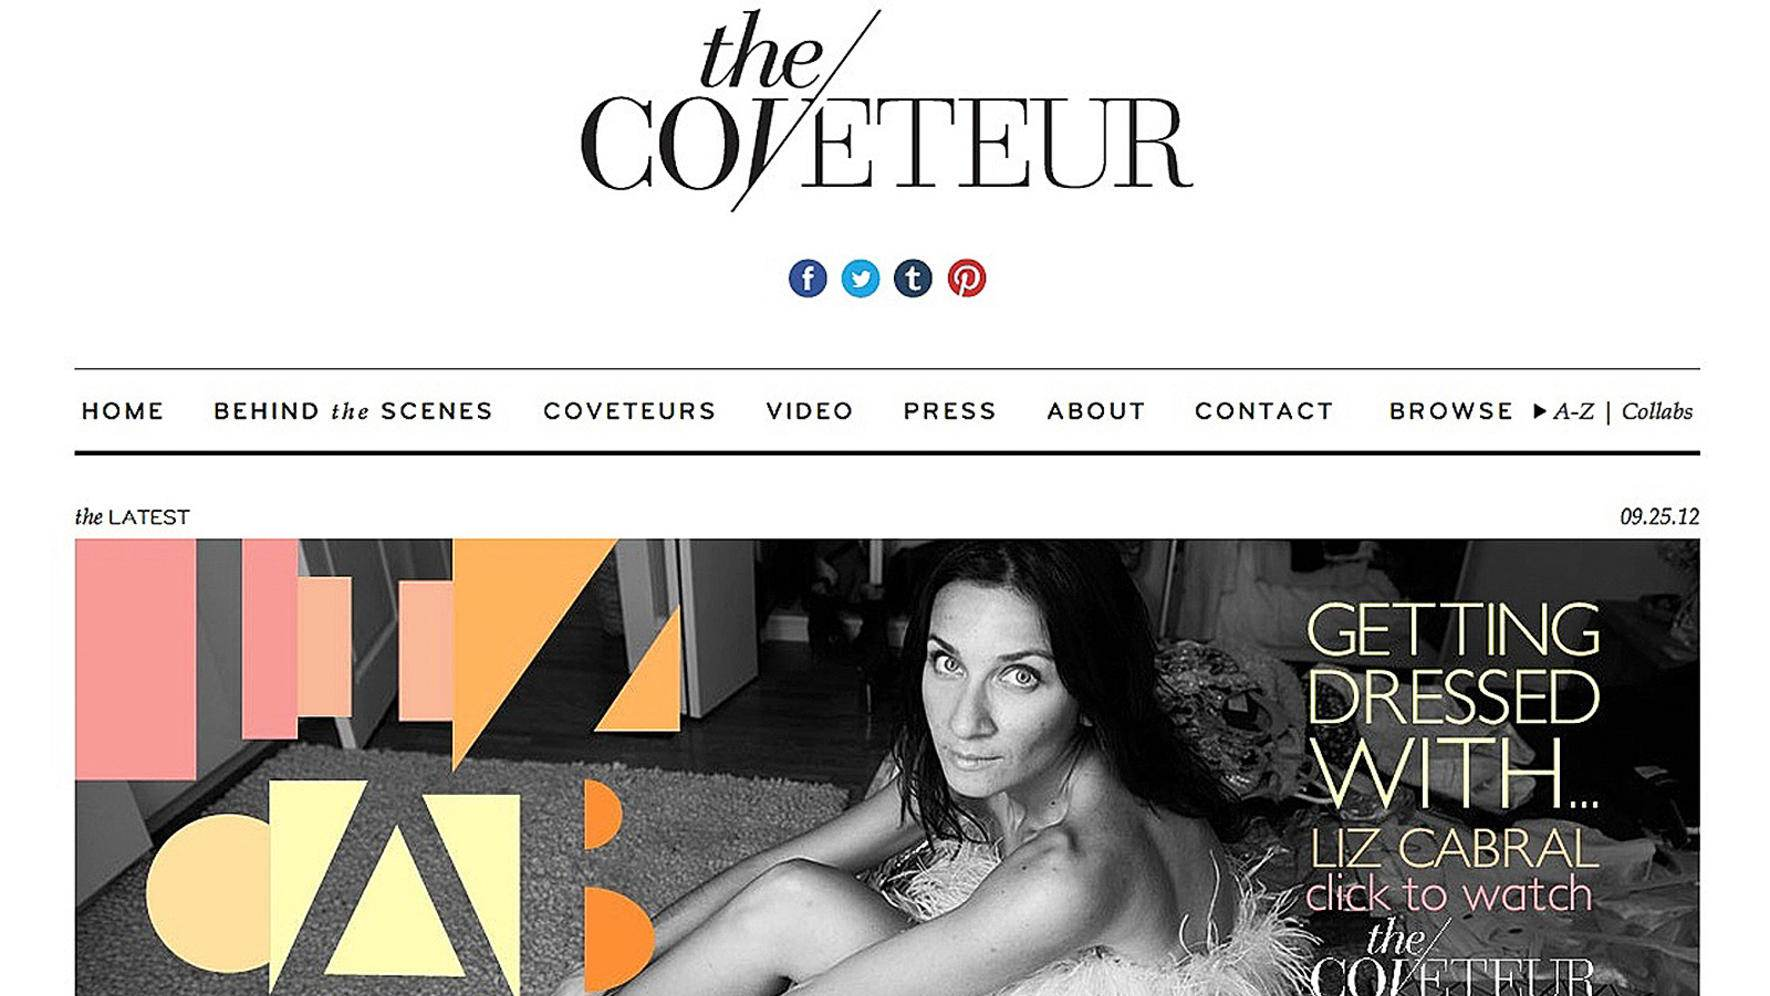 www.thecoveteur.com